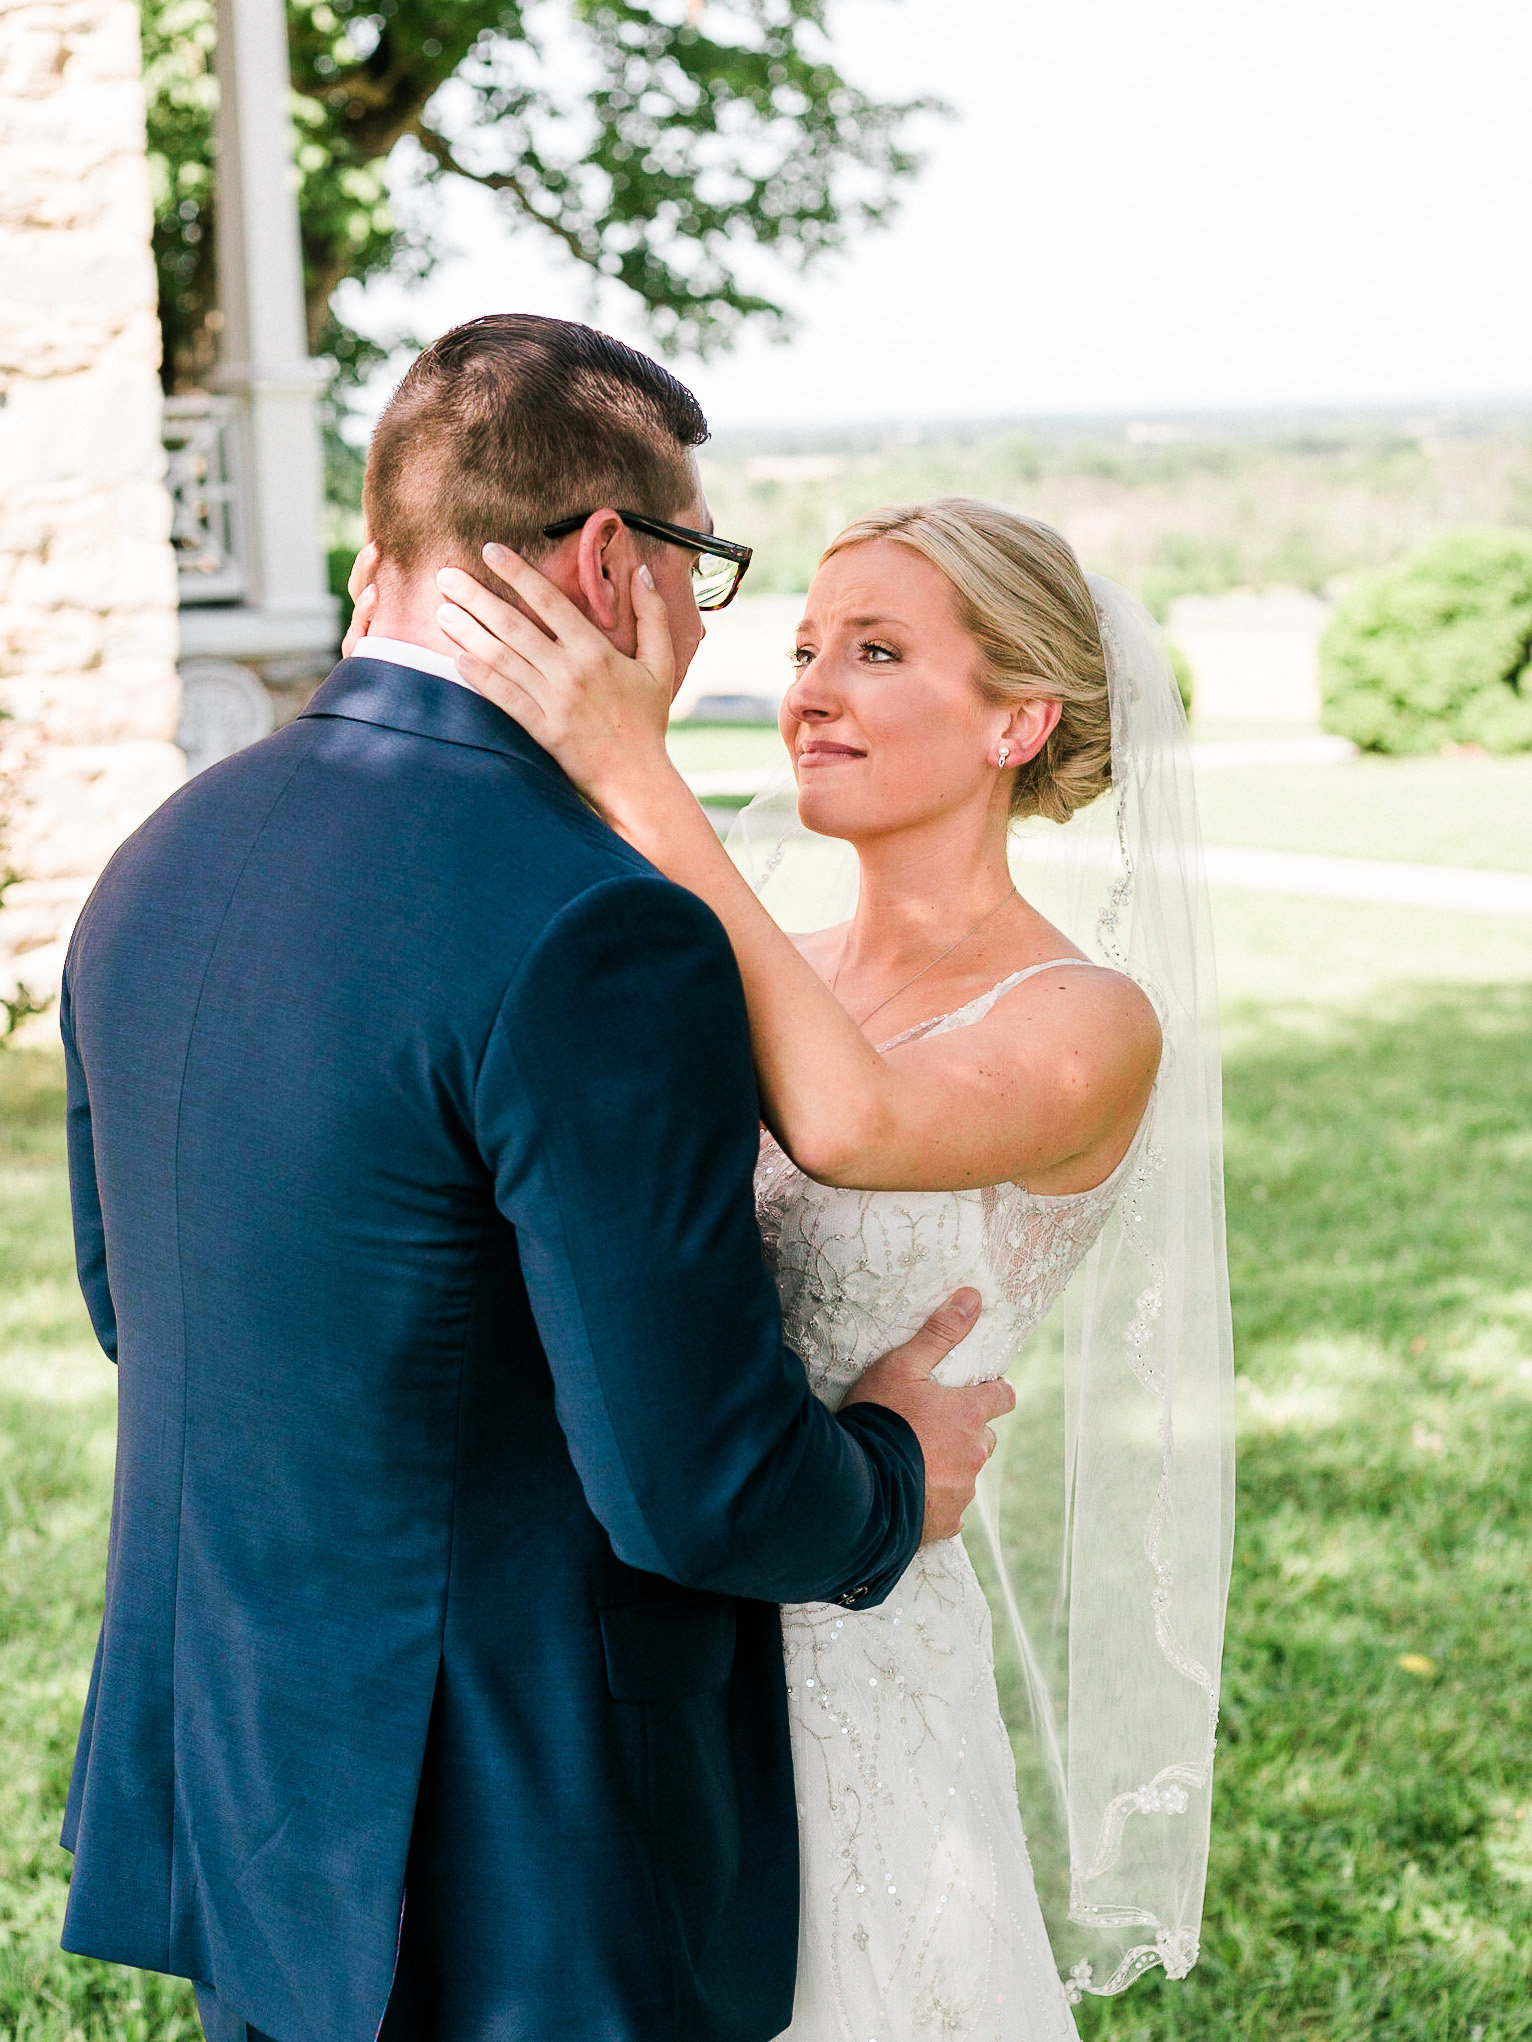 During a first look, a bride cries while smiling, holding her groom's head in her hands